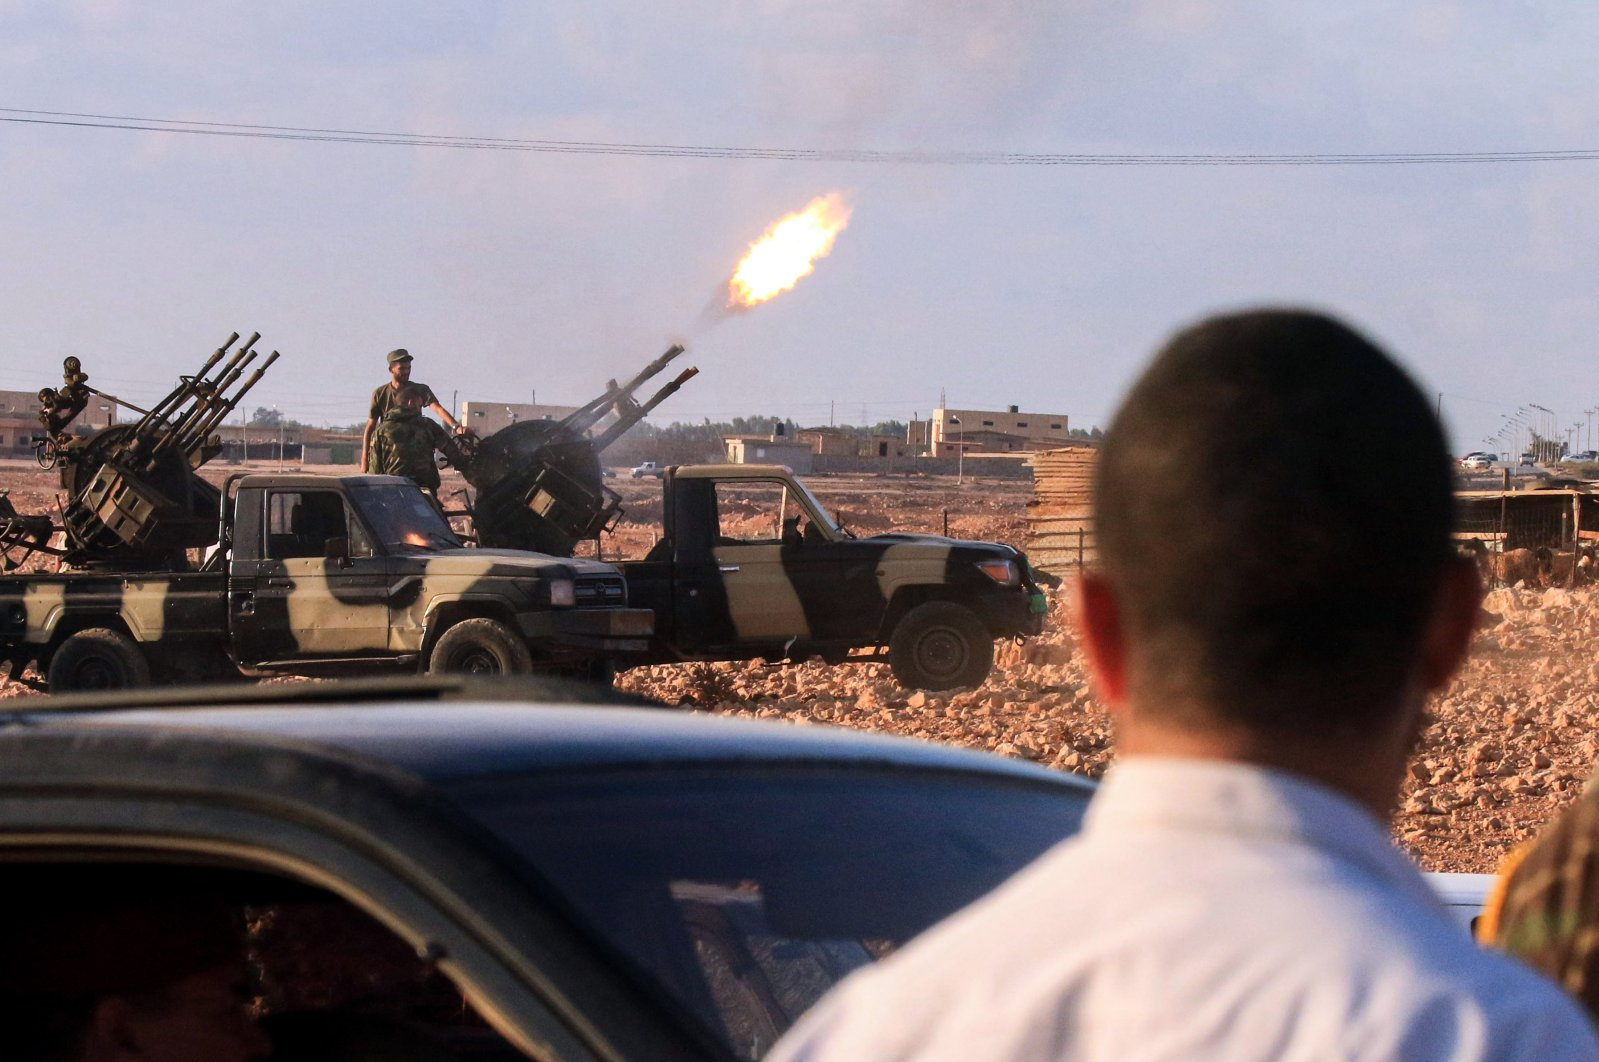 """An anti-aircraft gun fires rounds in tribute during the funeral of a commander of the """"Saiqa"""" (Special Forces) of the self-proclaimed Libyan National Army (LNA) loyal to putschist Gen. Khalifa Haftar, in the eastern city of Benghazi, Libya, Nov. 1, 2020. (AFP Photo)"""